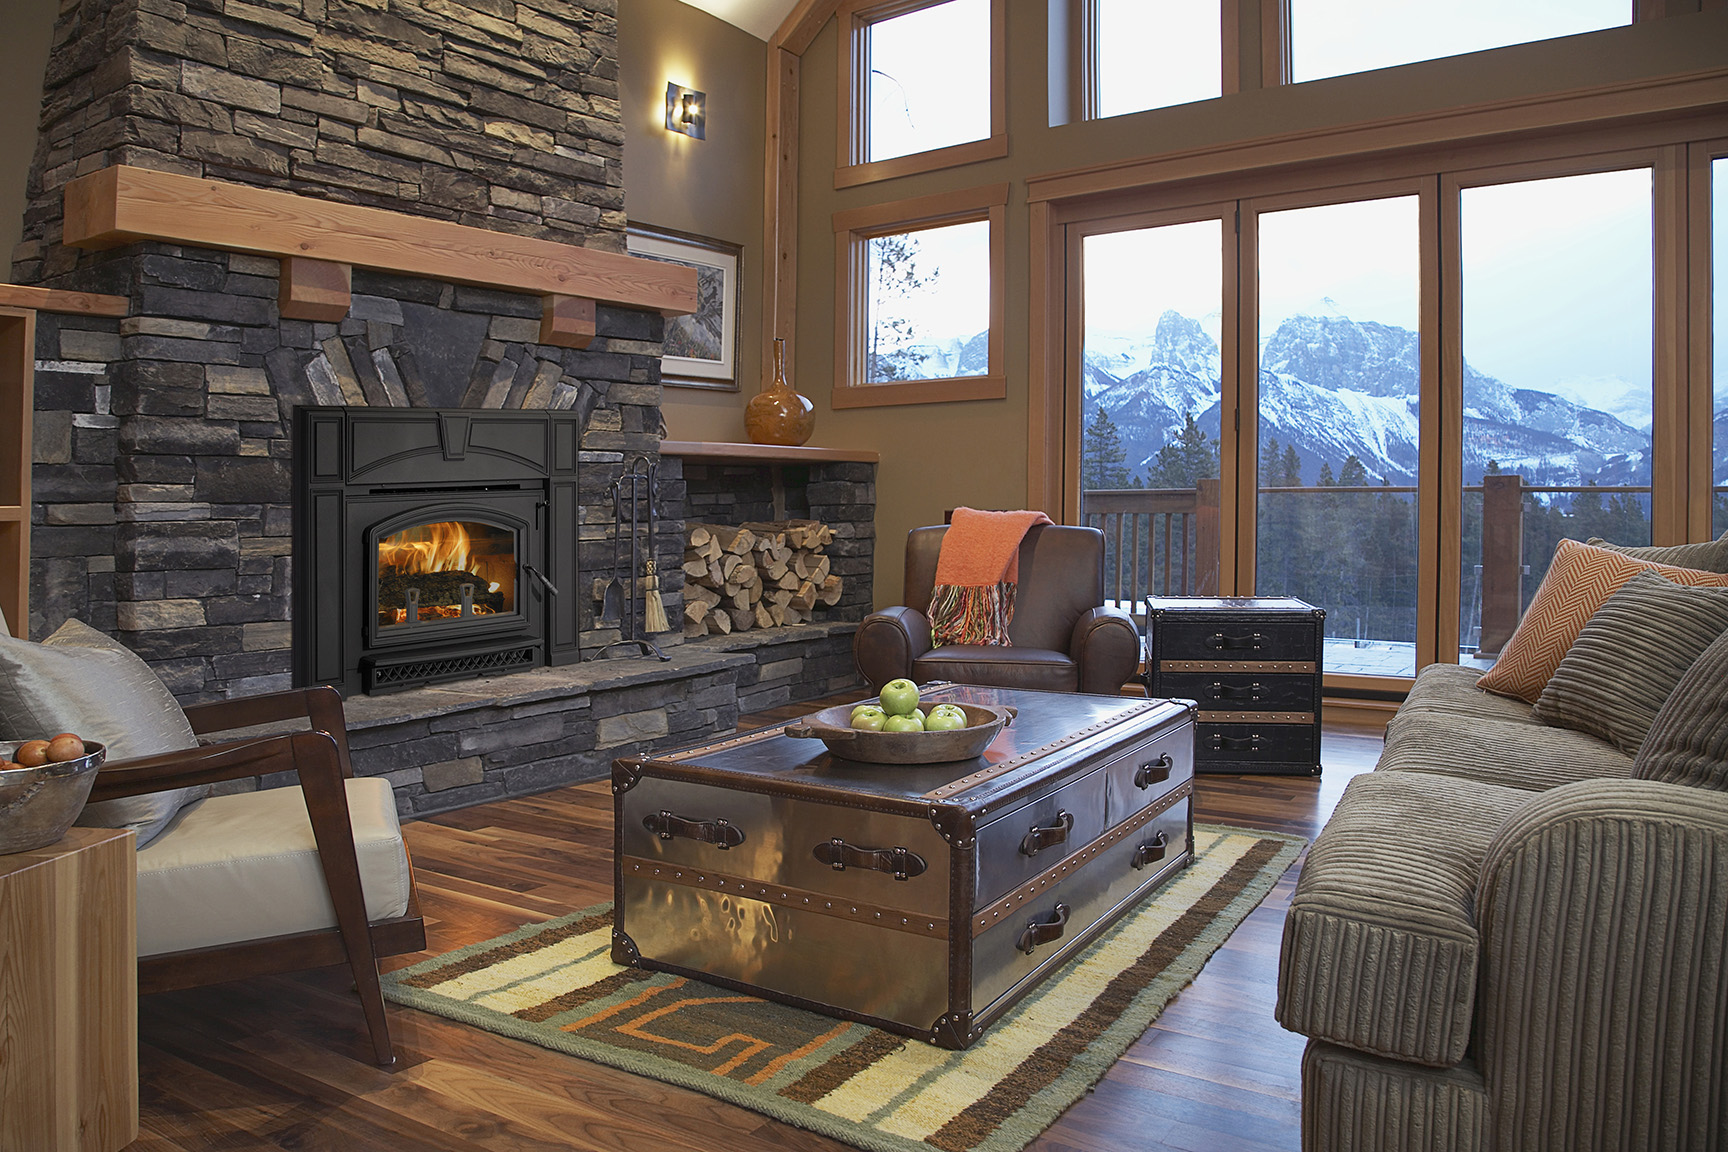 converting to a wood fireplace insert